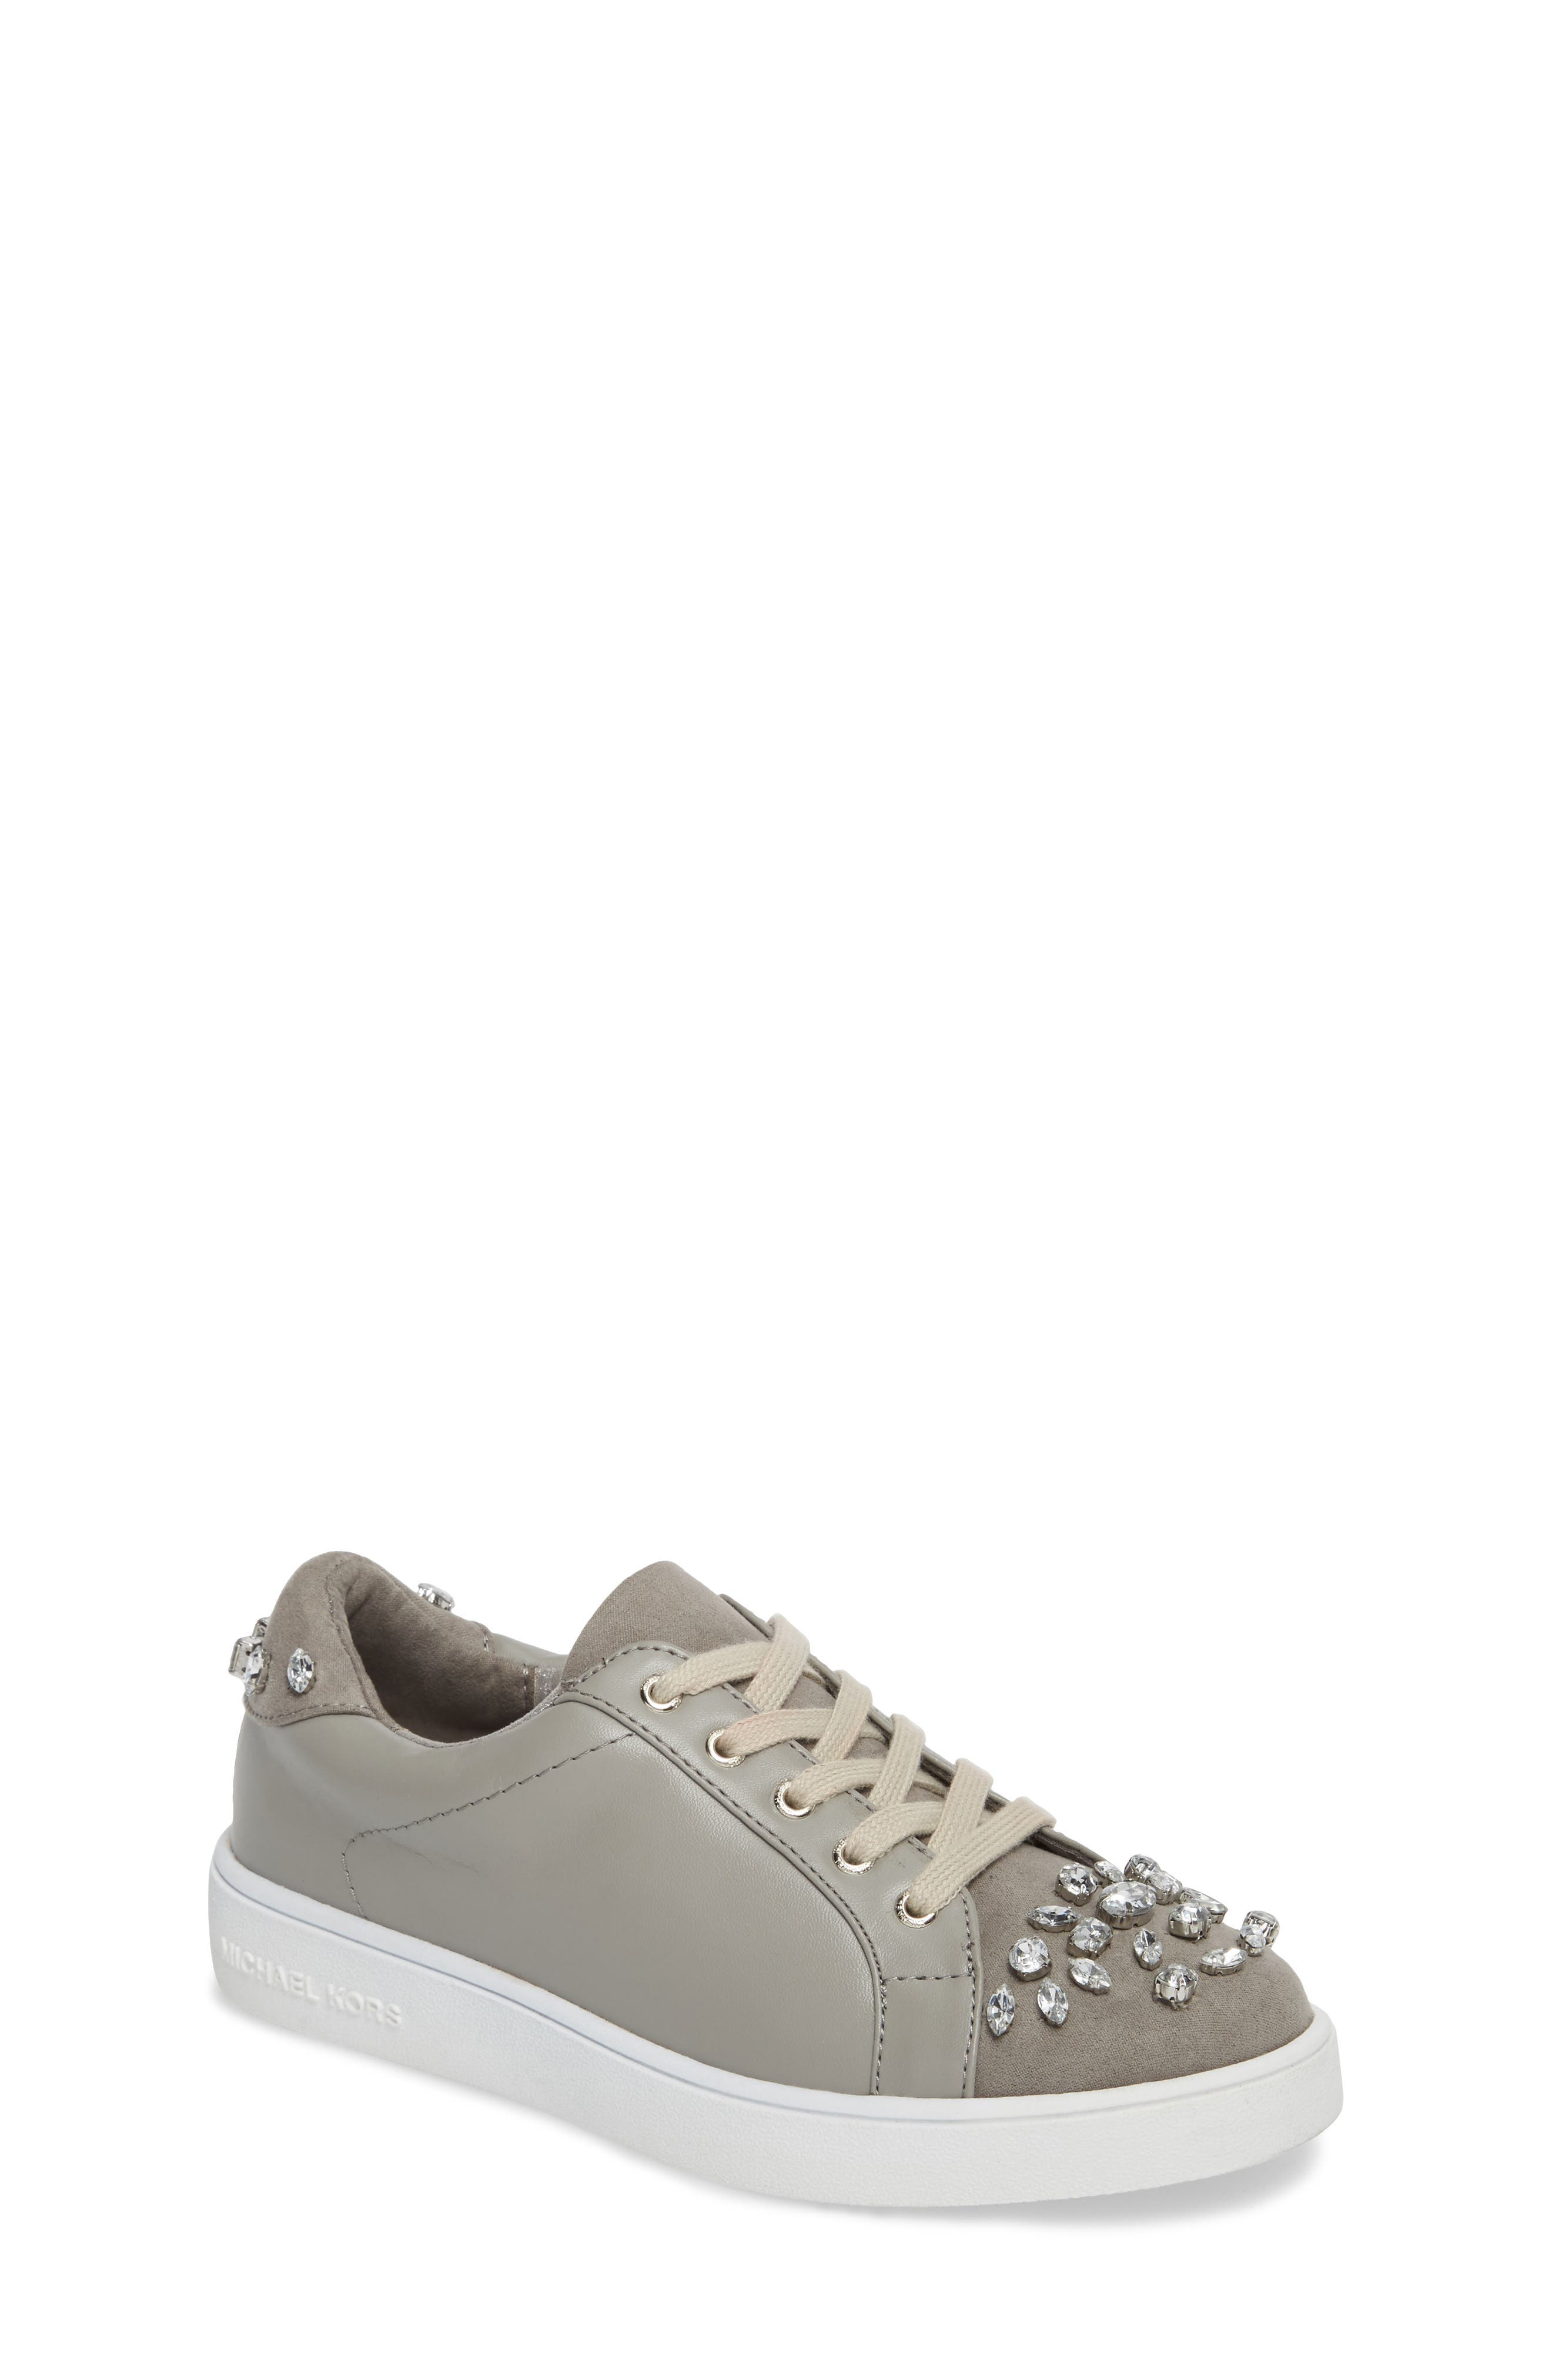 MICHAEL Michael Kors Ivy League Crystal Embellished Sneaker (Toddler, Little Kid & Big Kid)